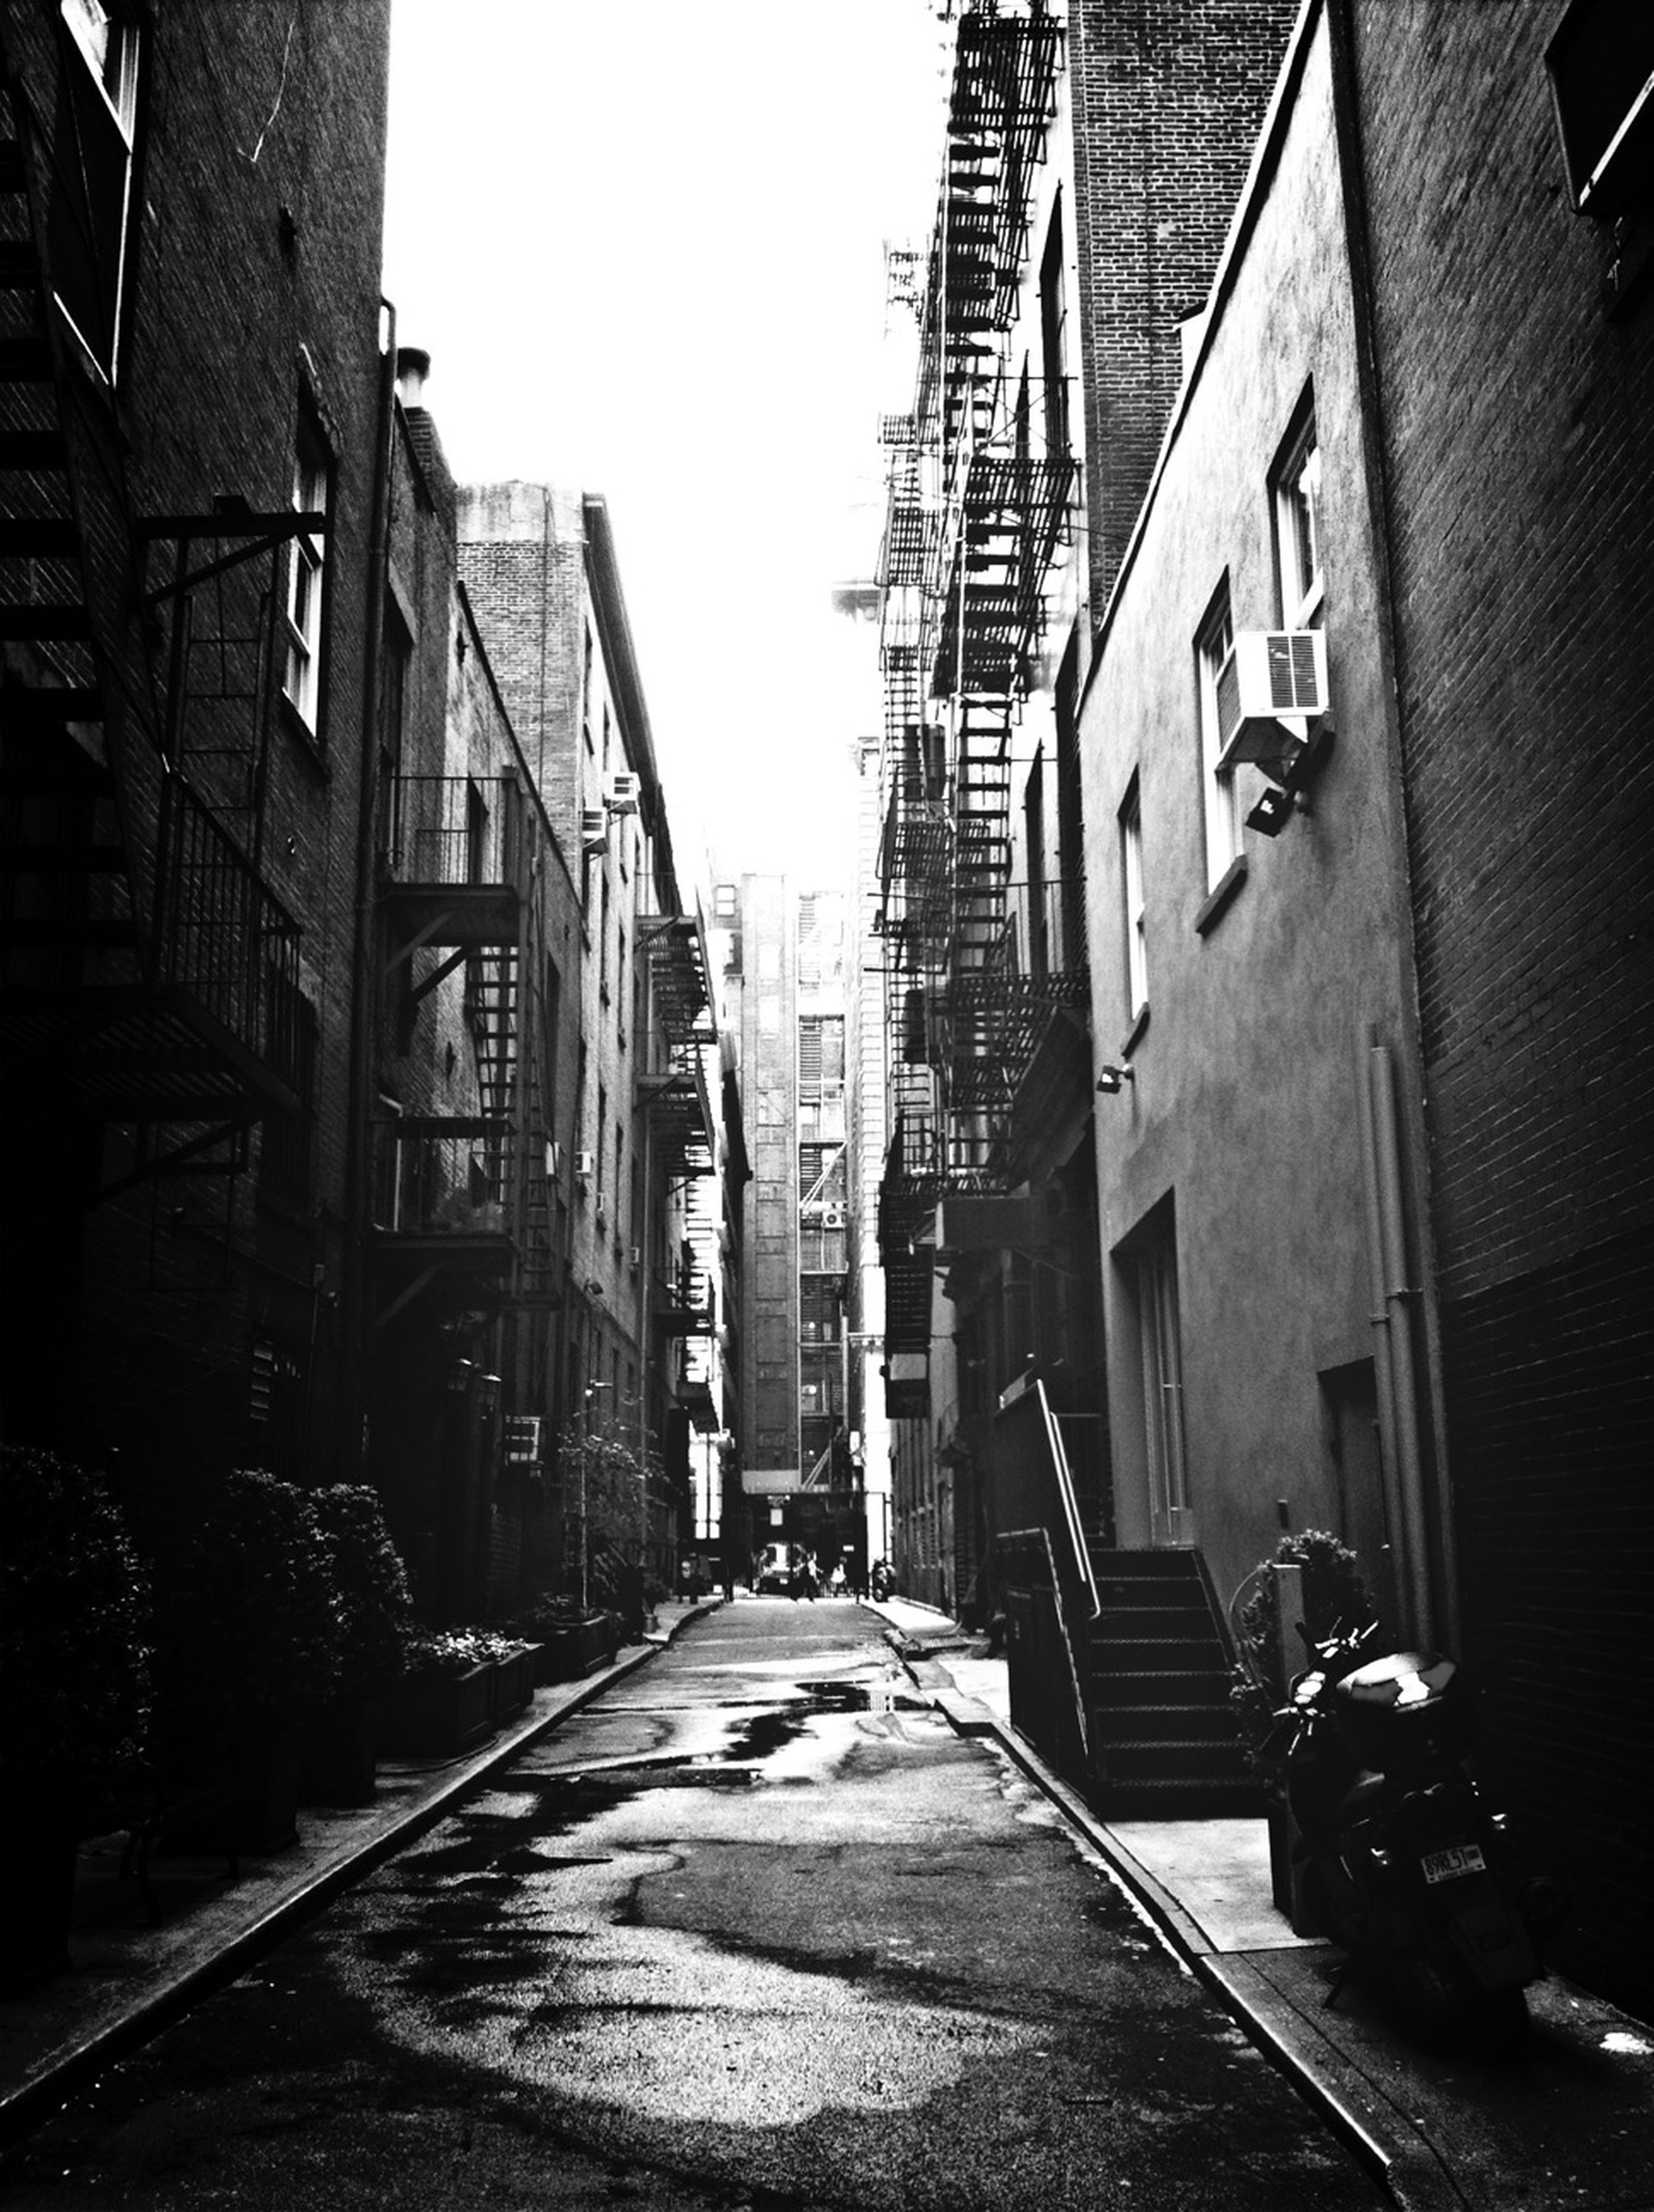 building exterior, architecture, built structure, the way forward, diminishing perspective, street, city, residential building, residential structure, clear sky, building, vanishing point, transportation, road, alley, residential district, narrow, house, outdoors, day